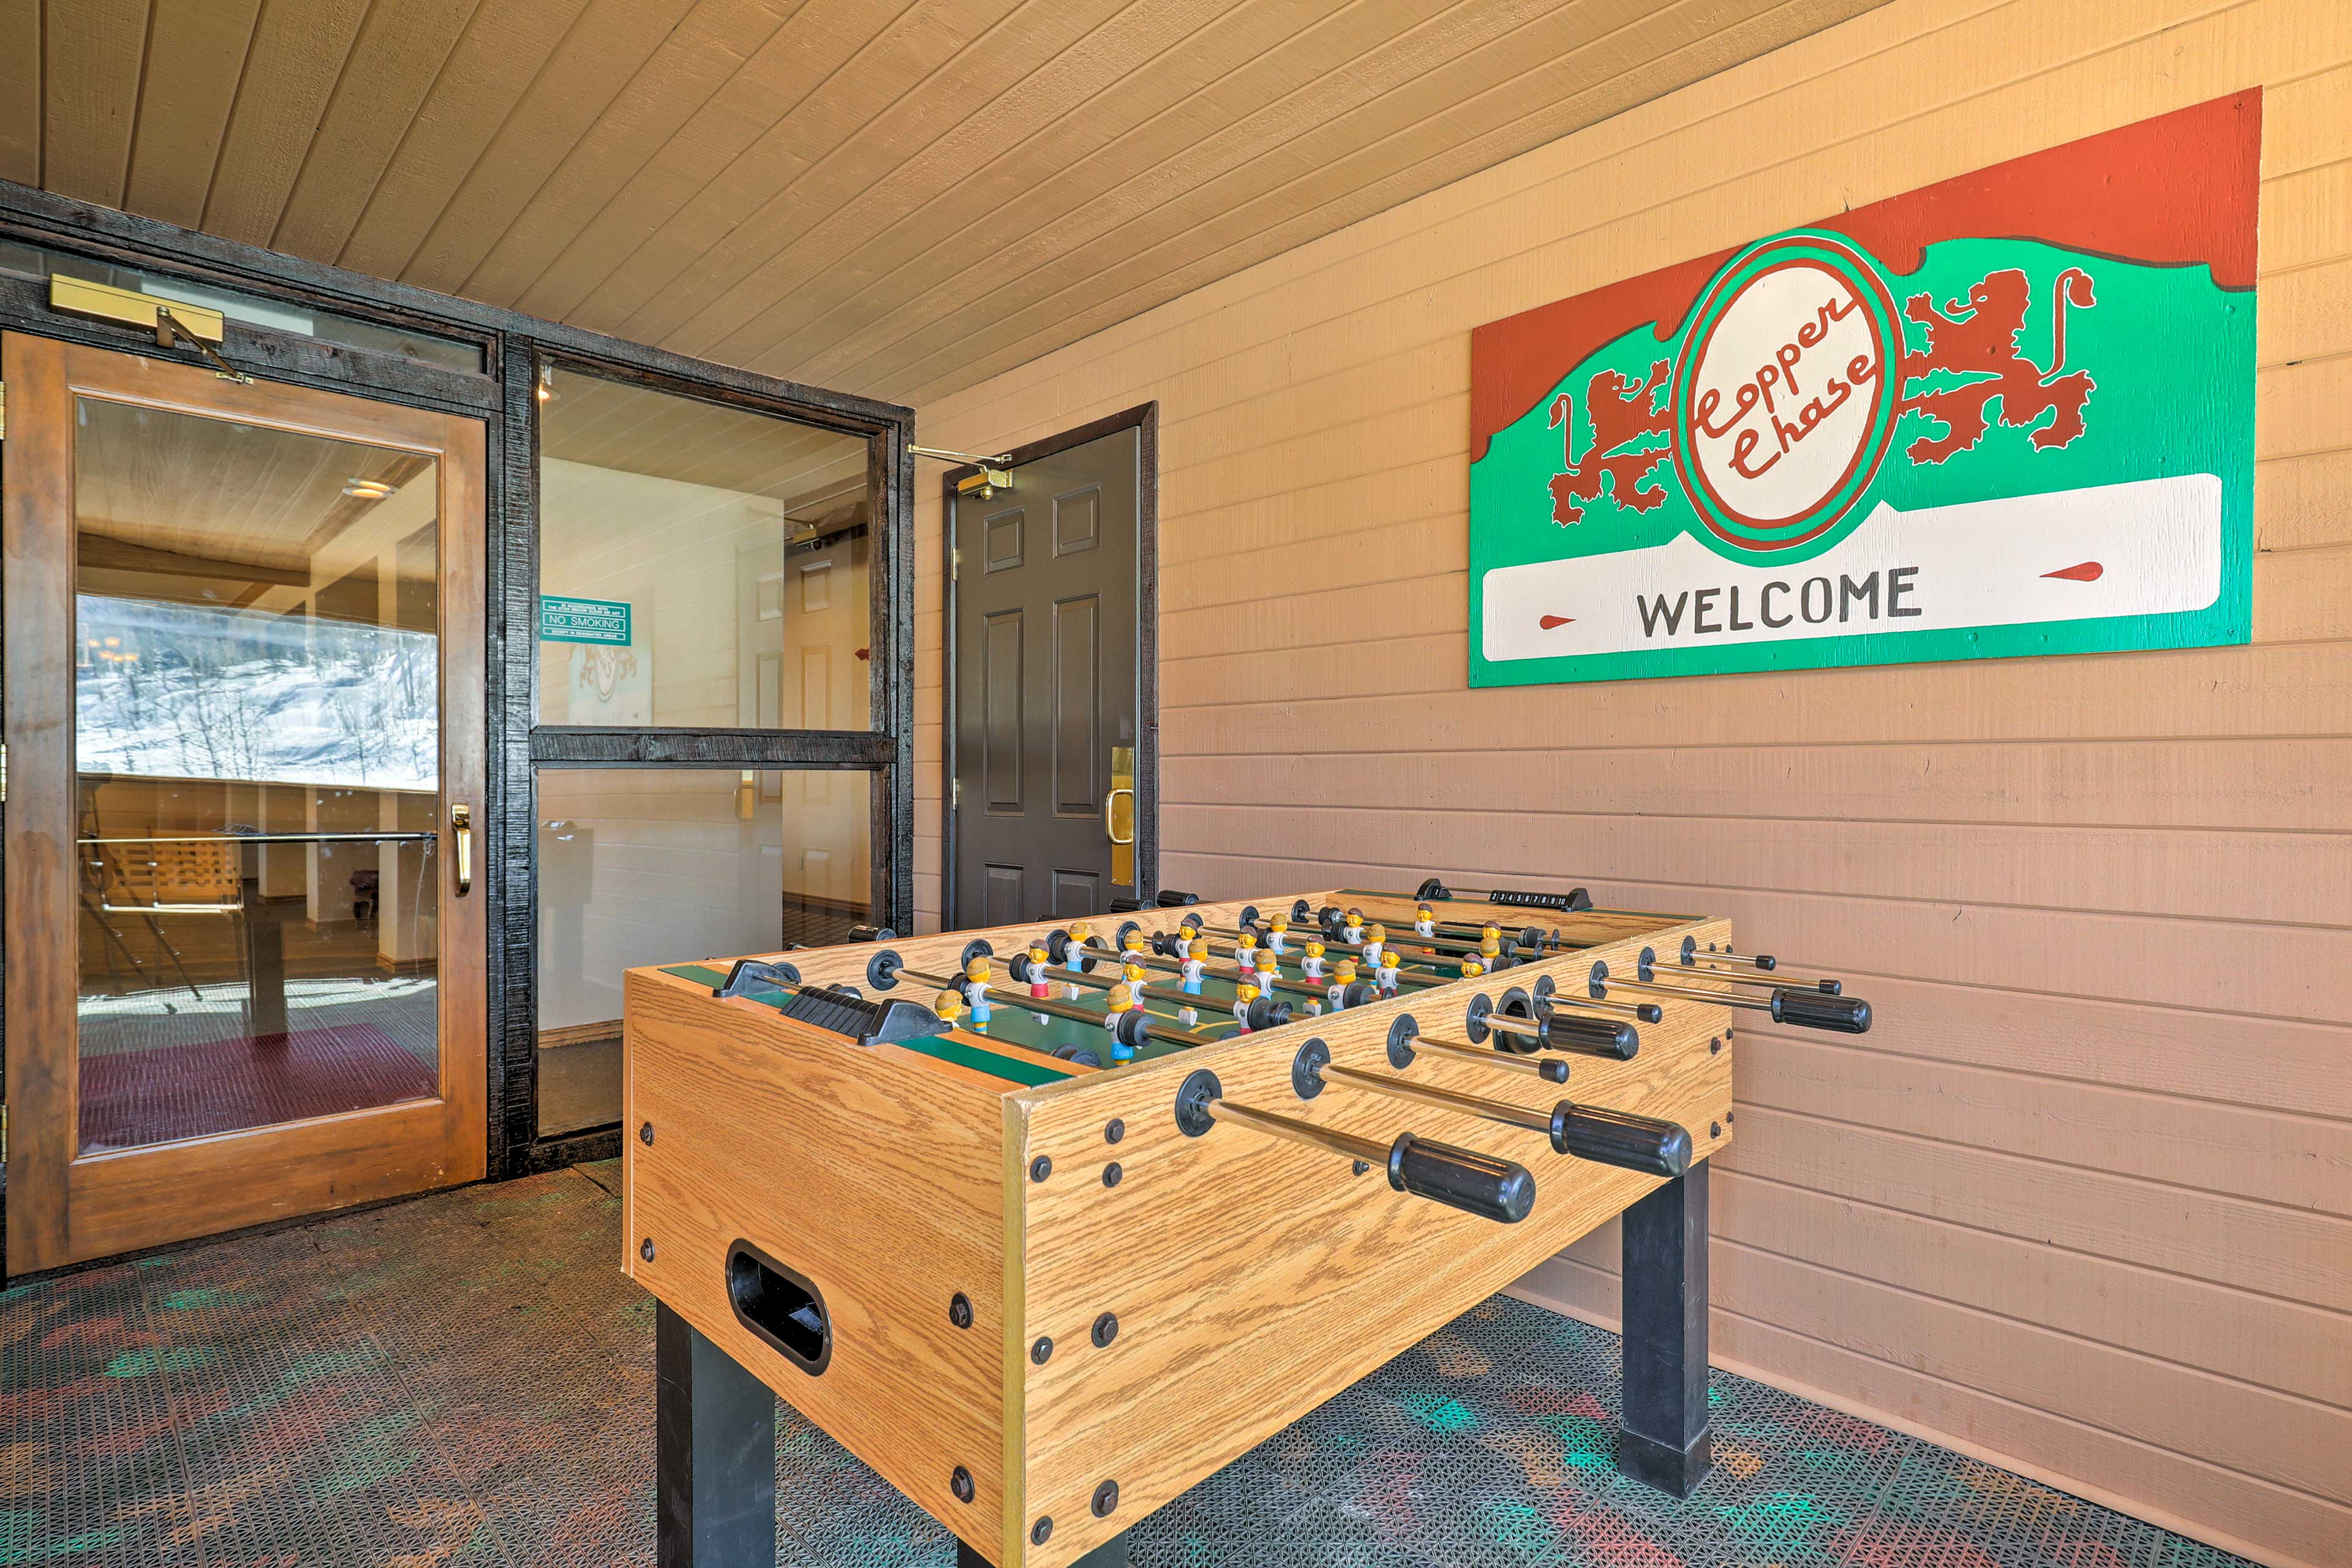 A foosball table adds entertainment during your stay.